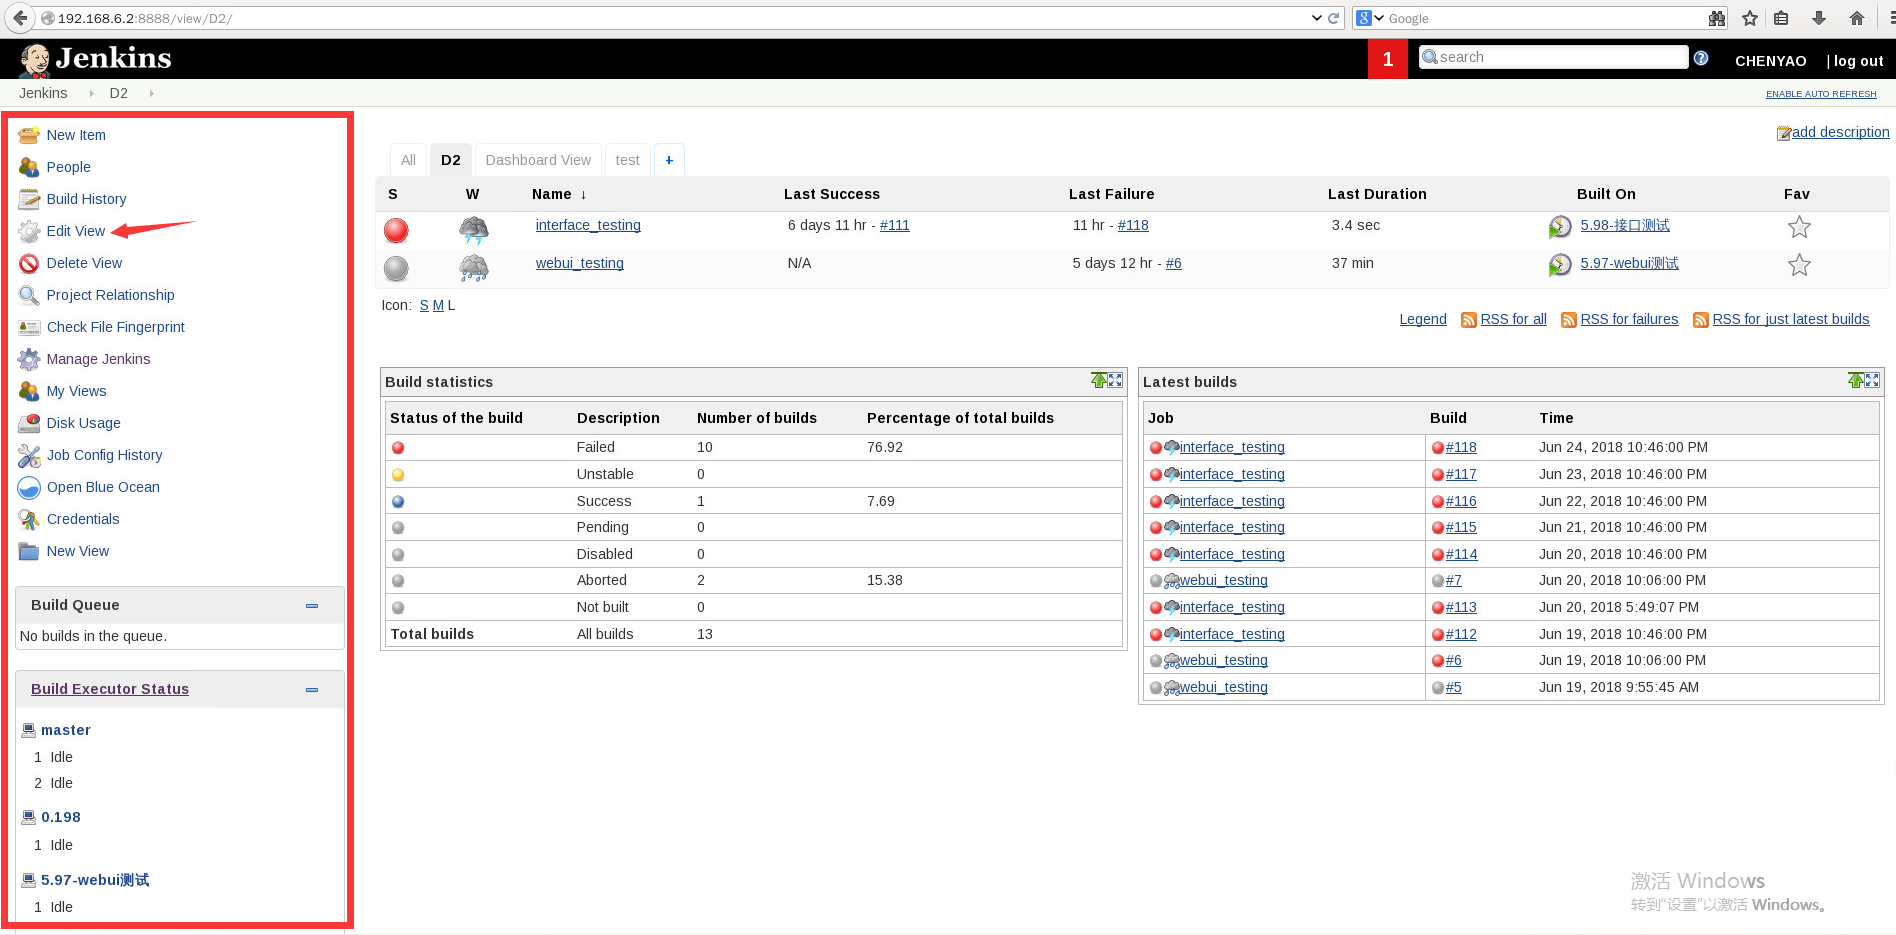 JENKINS-52170] For Dashboard View plugin, how can I edit the